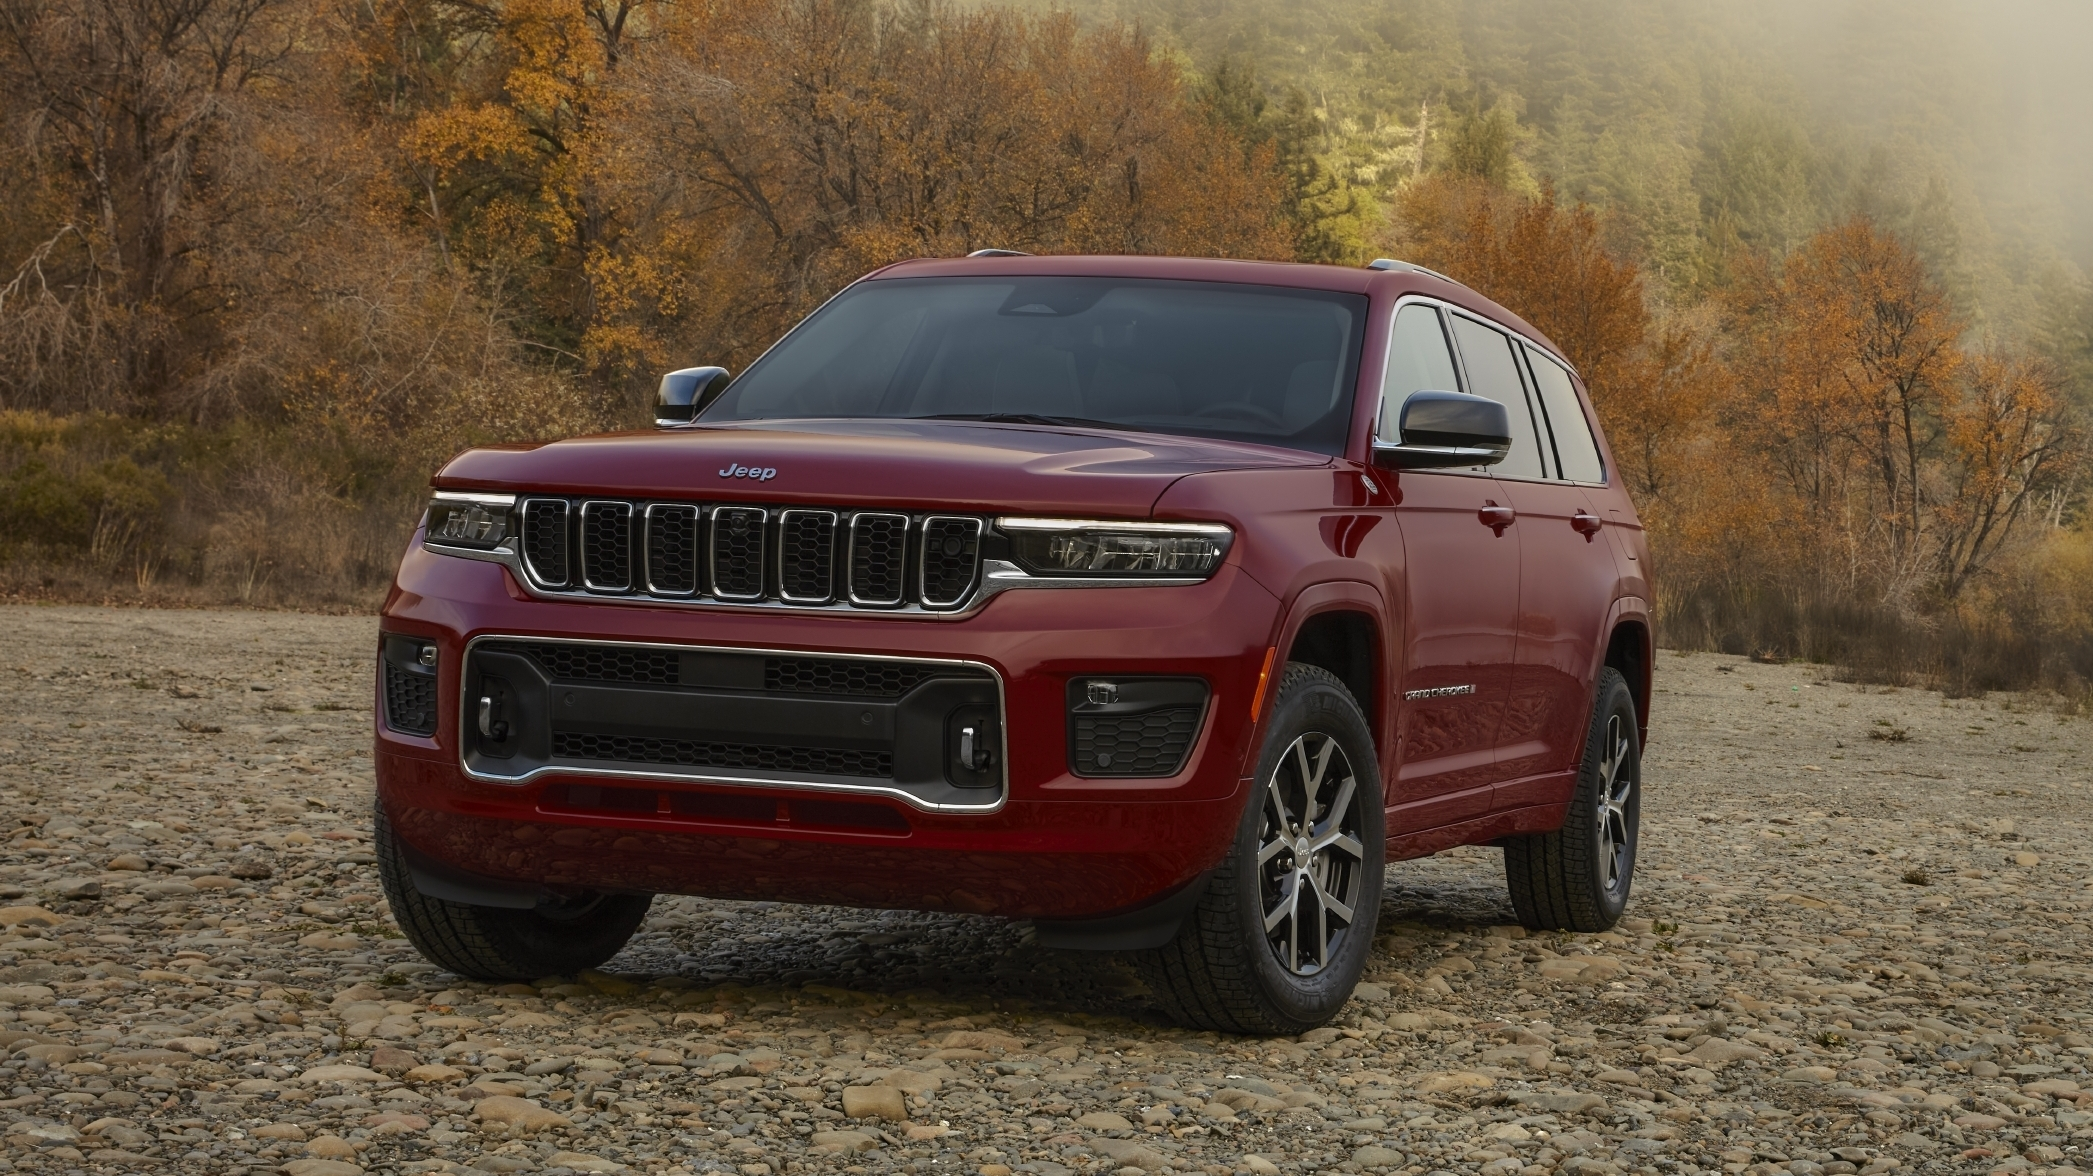 Jeep Grand Cherokee L Overland Off-Road 2021